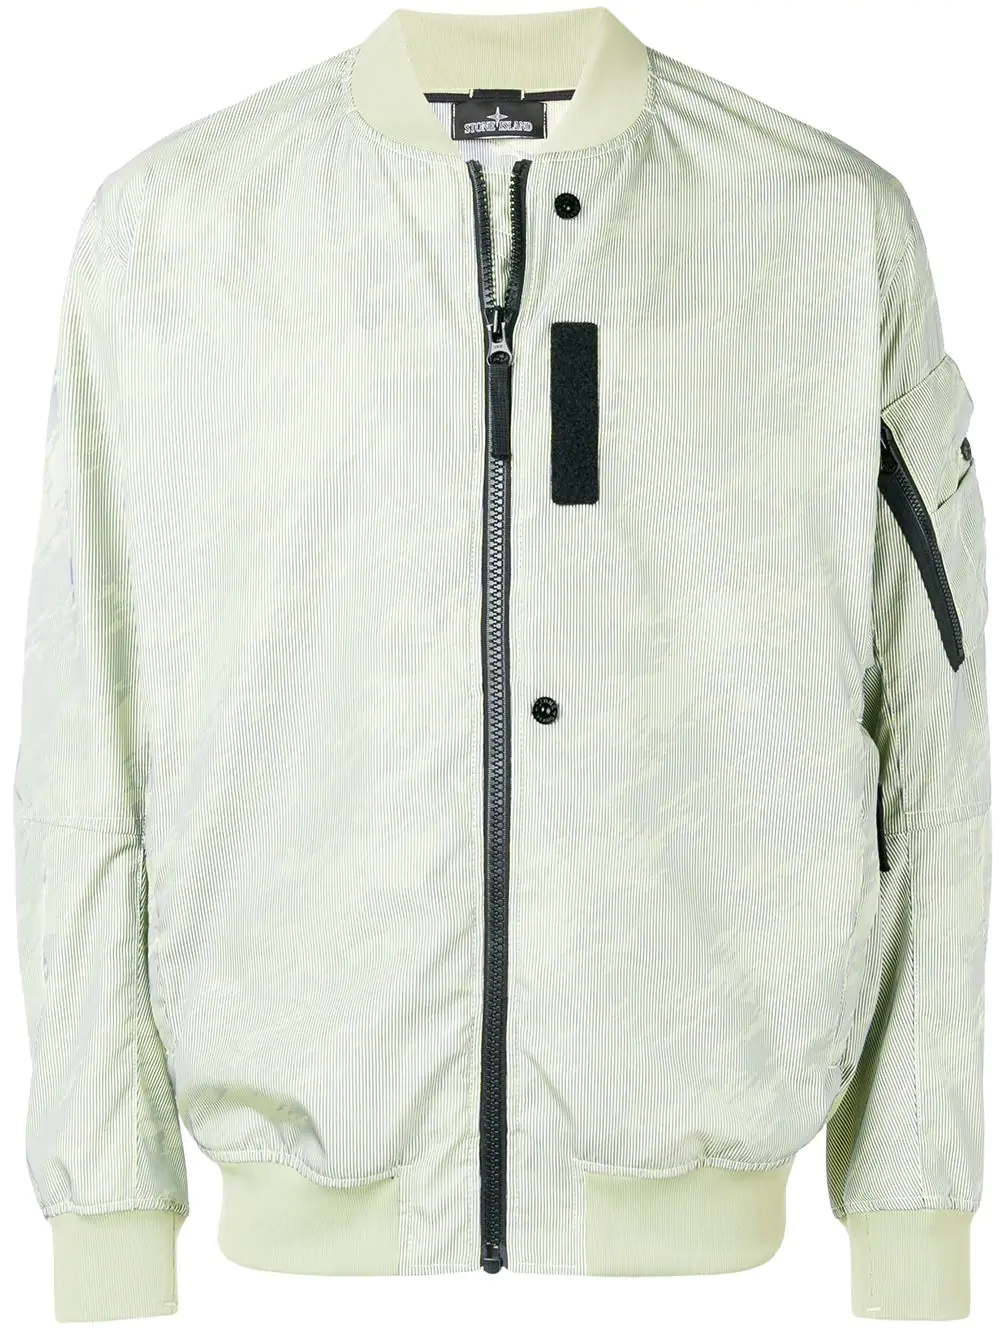 dd8291d07f9081 Stone Island Shadow Project Zipped Bomber Jacket - Green